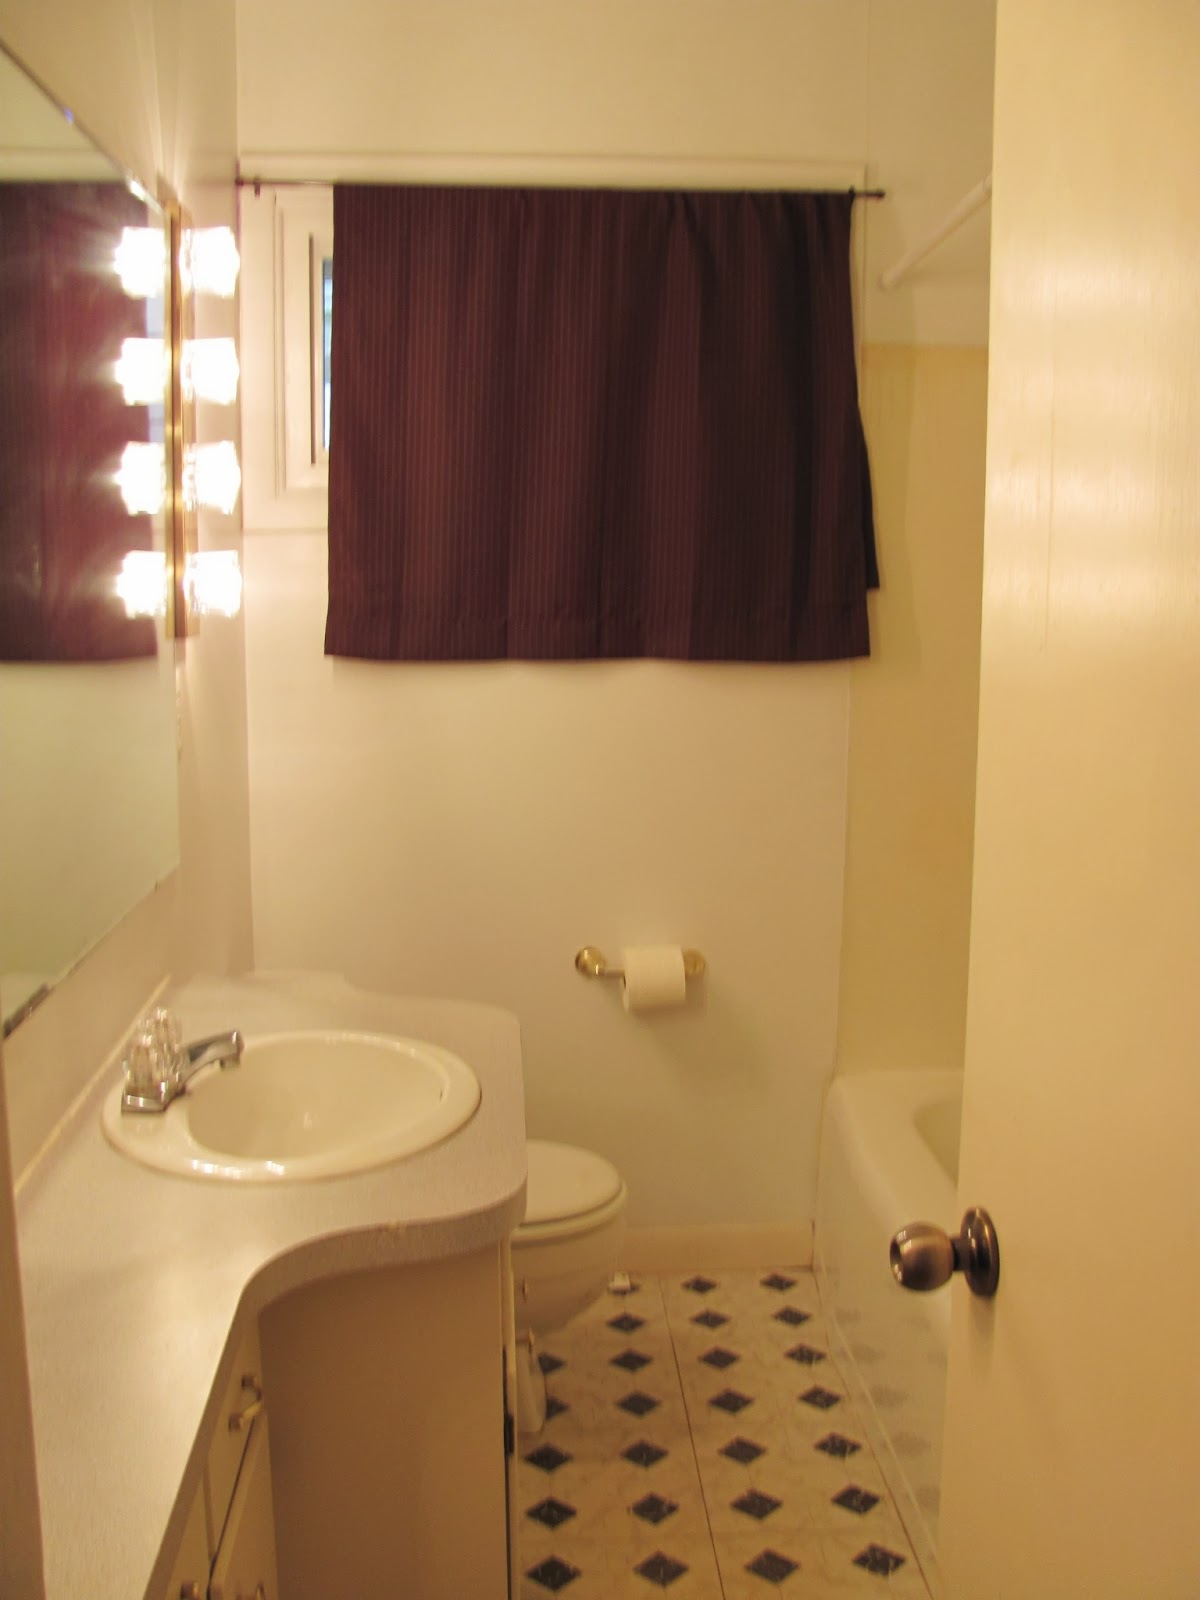 The bathroom is seen with the light on